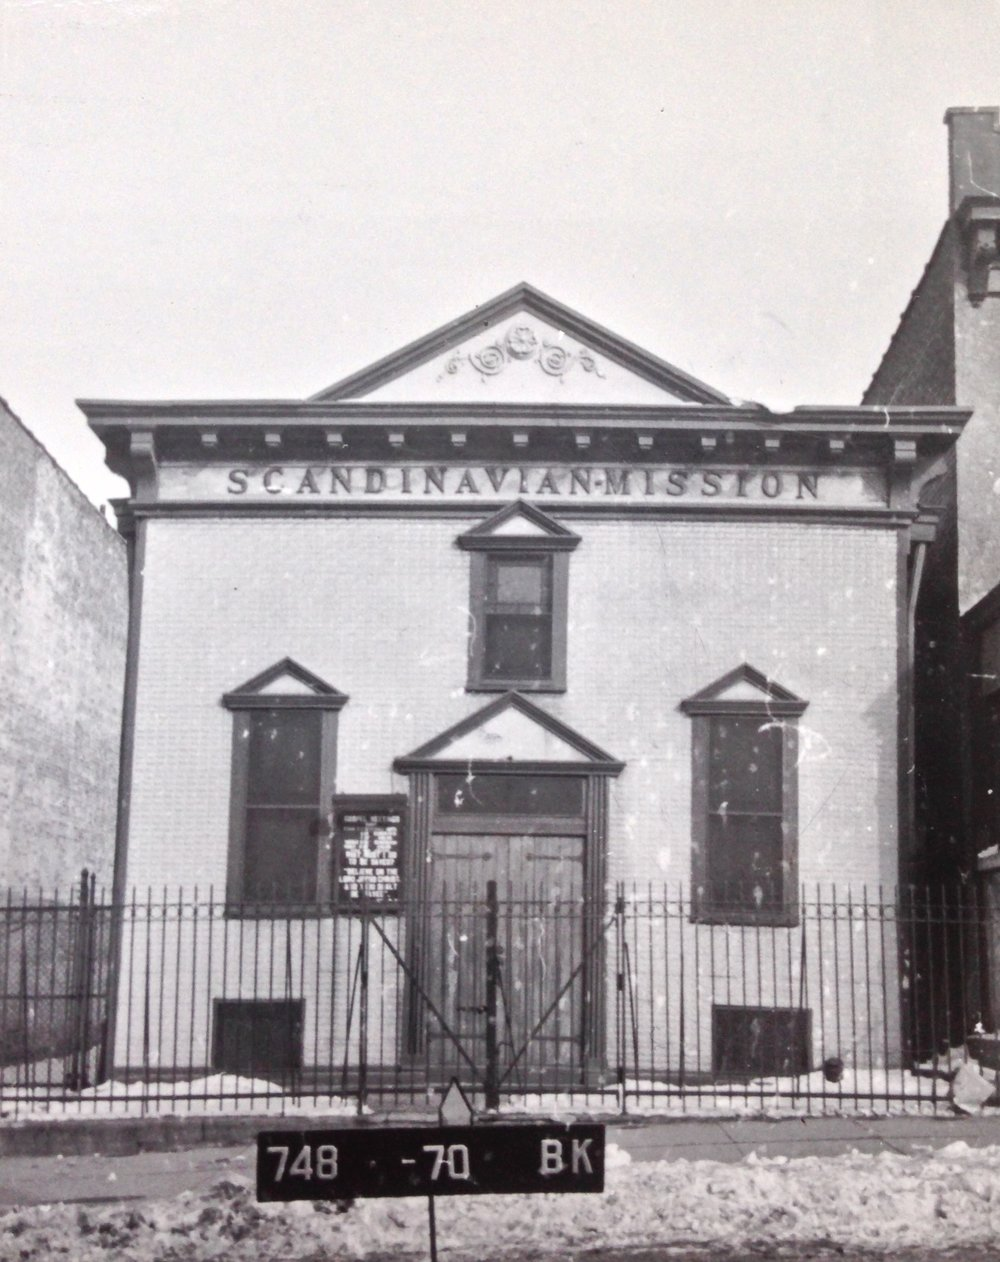 Scandinavian Mission, 517 46th St. between 5th-6th Avenues. 1939-1941. NYC Municipal Archives.